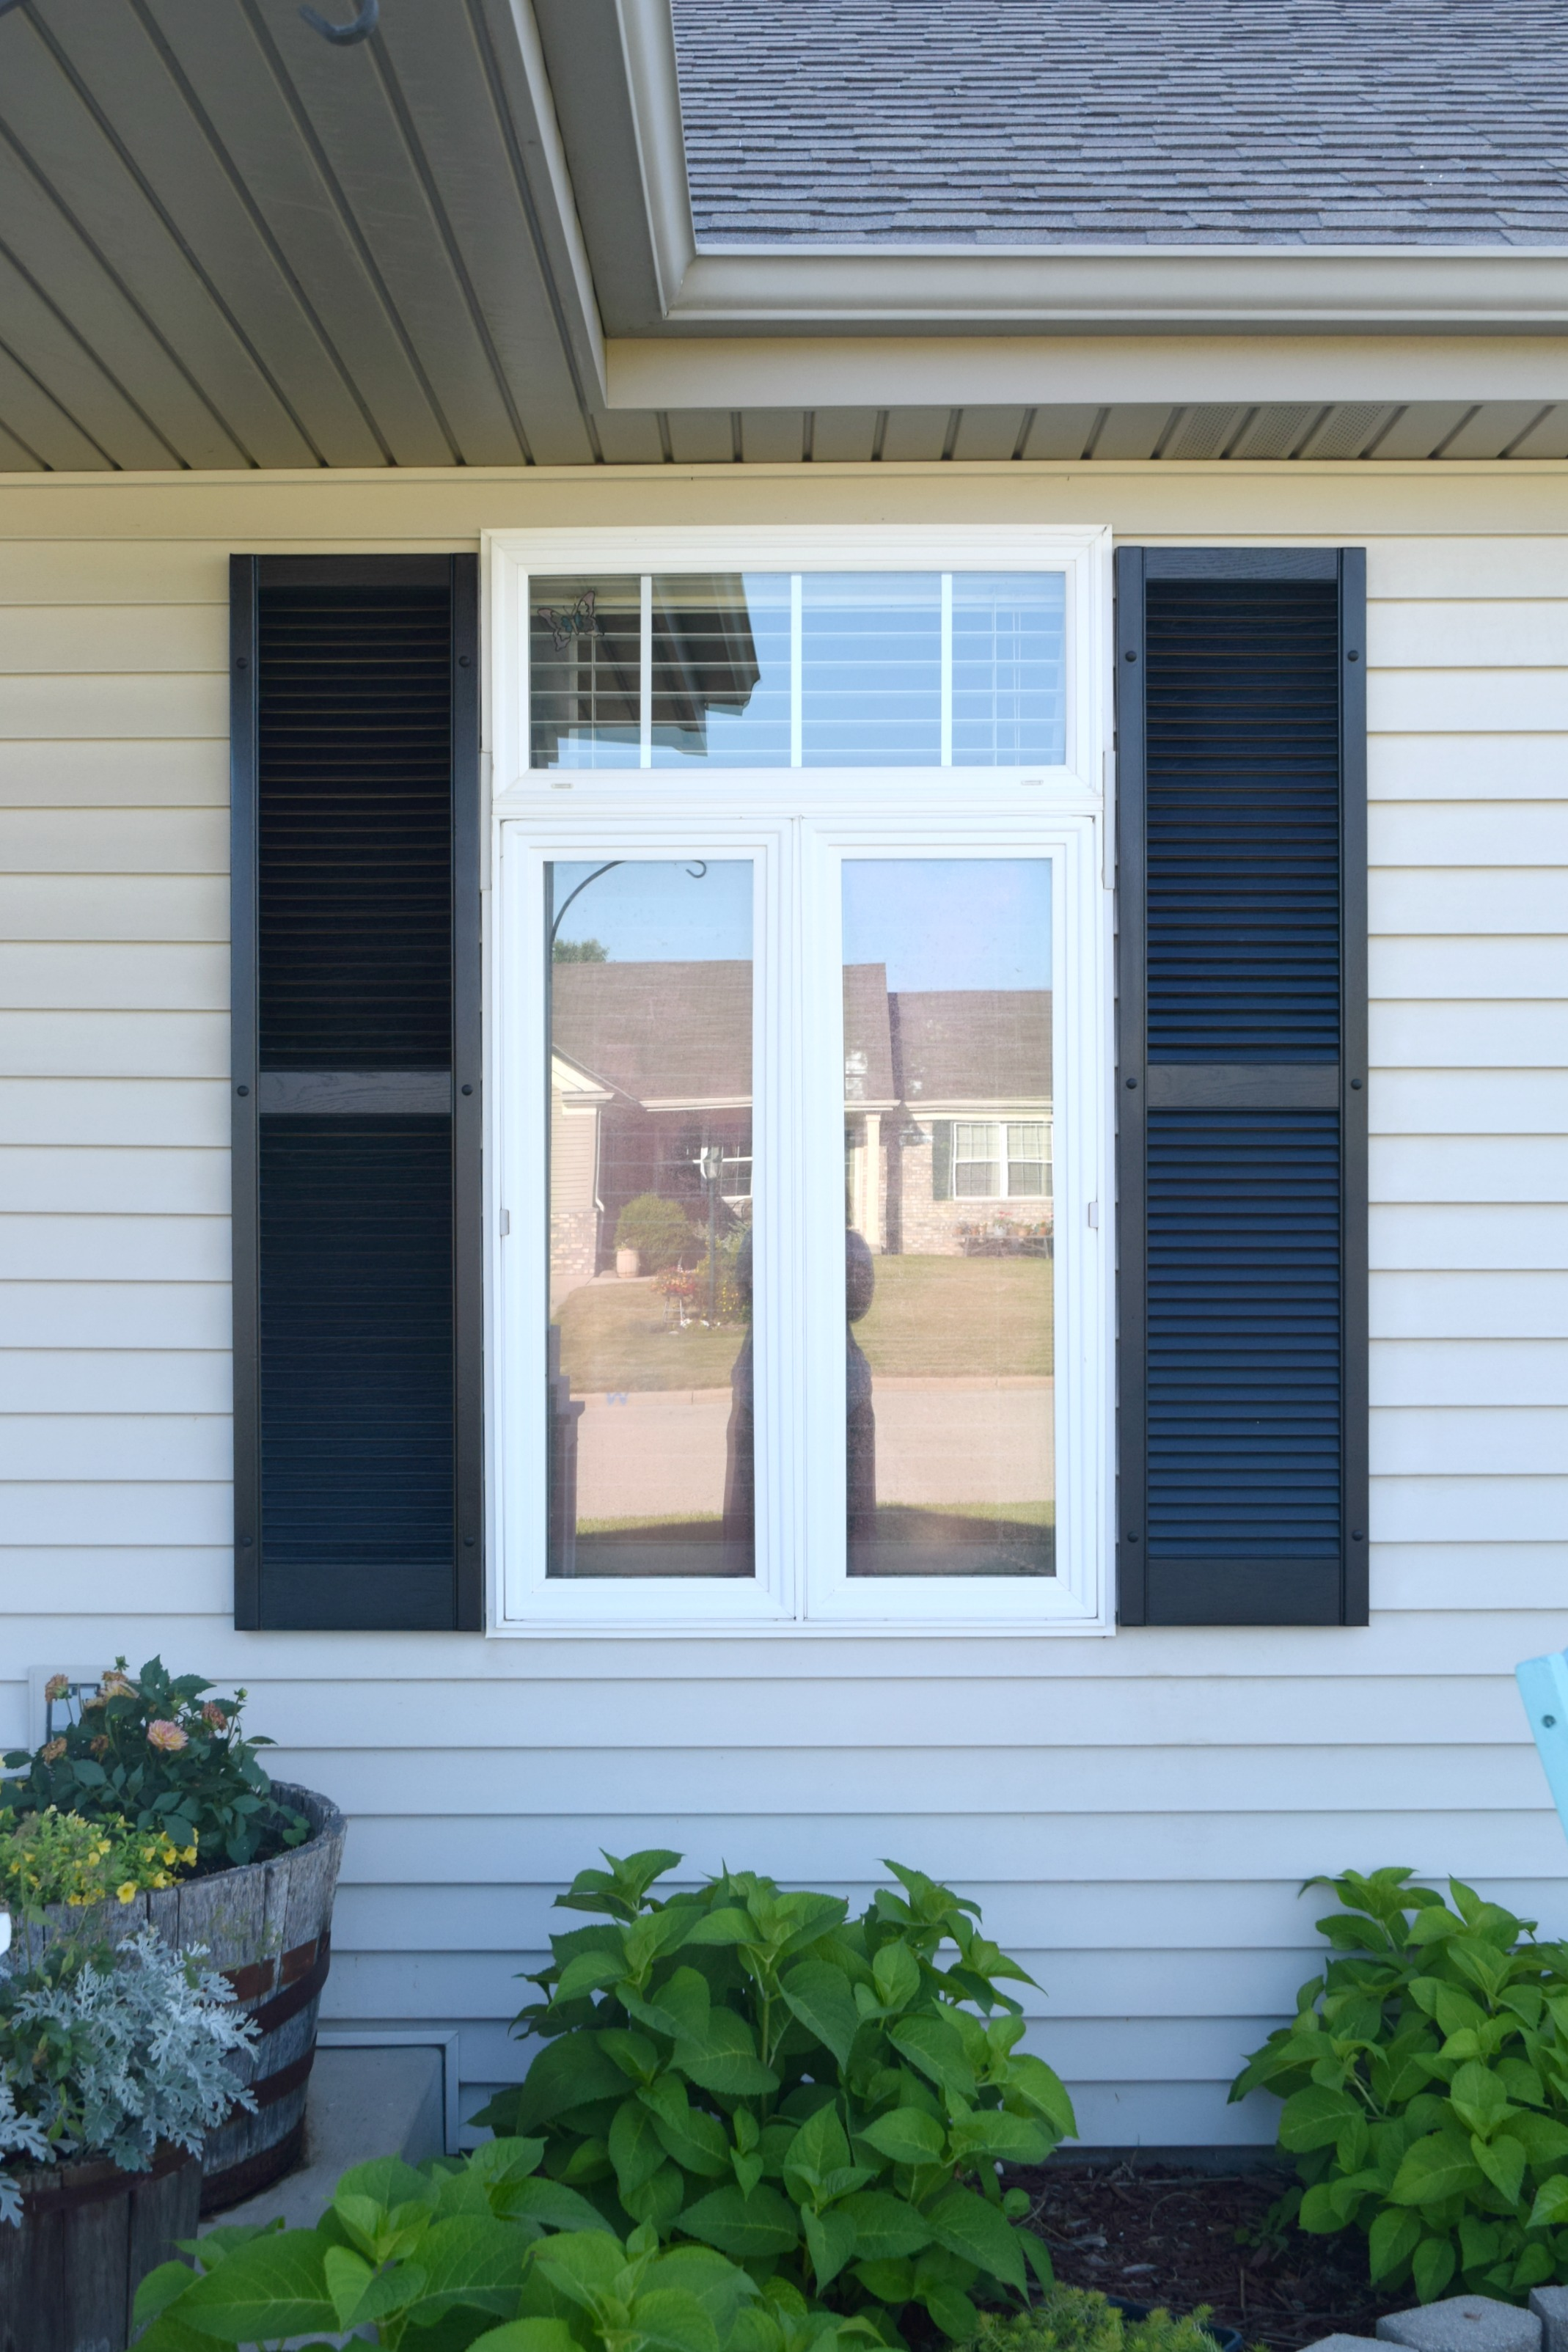 I think that Adding curb appeal how to paint shutters and front door can be helpful to many. I know that when thinking of selling a home the first item to ... & Adding curb appeal how to paint shutters and front door \u2022 Our ... Pezcame.Com